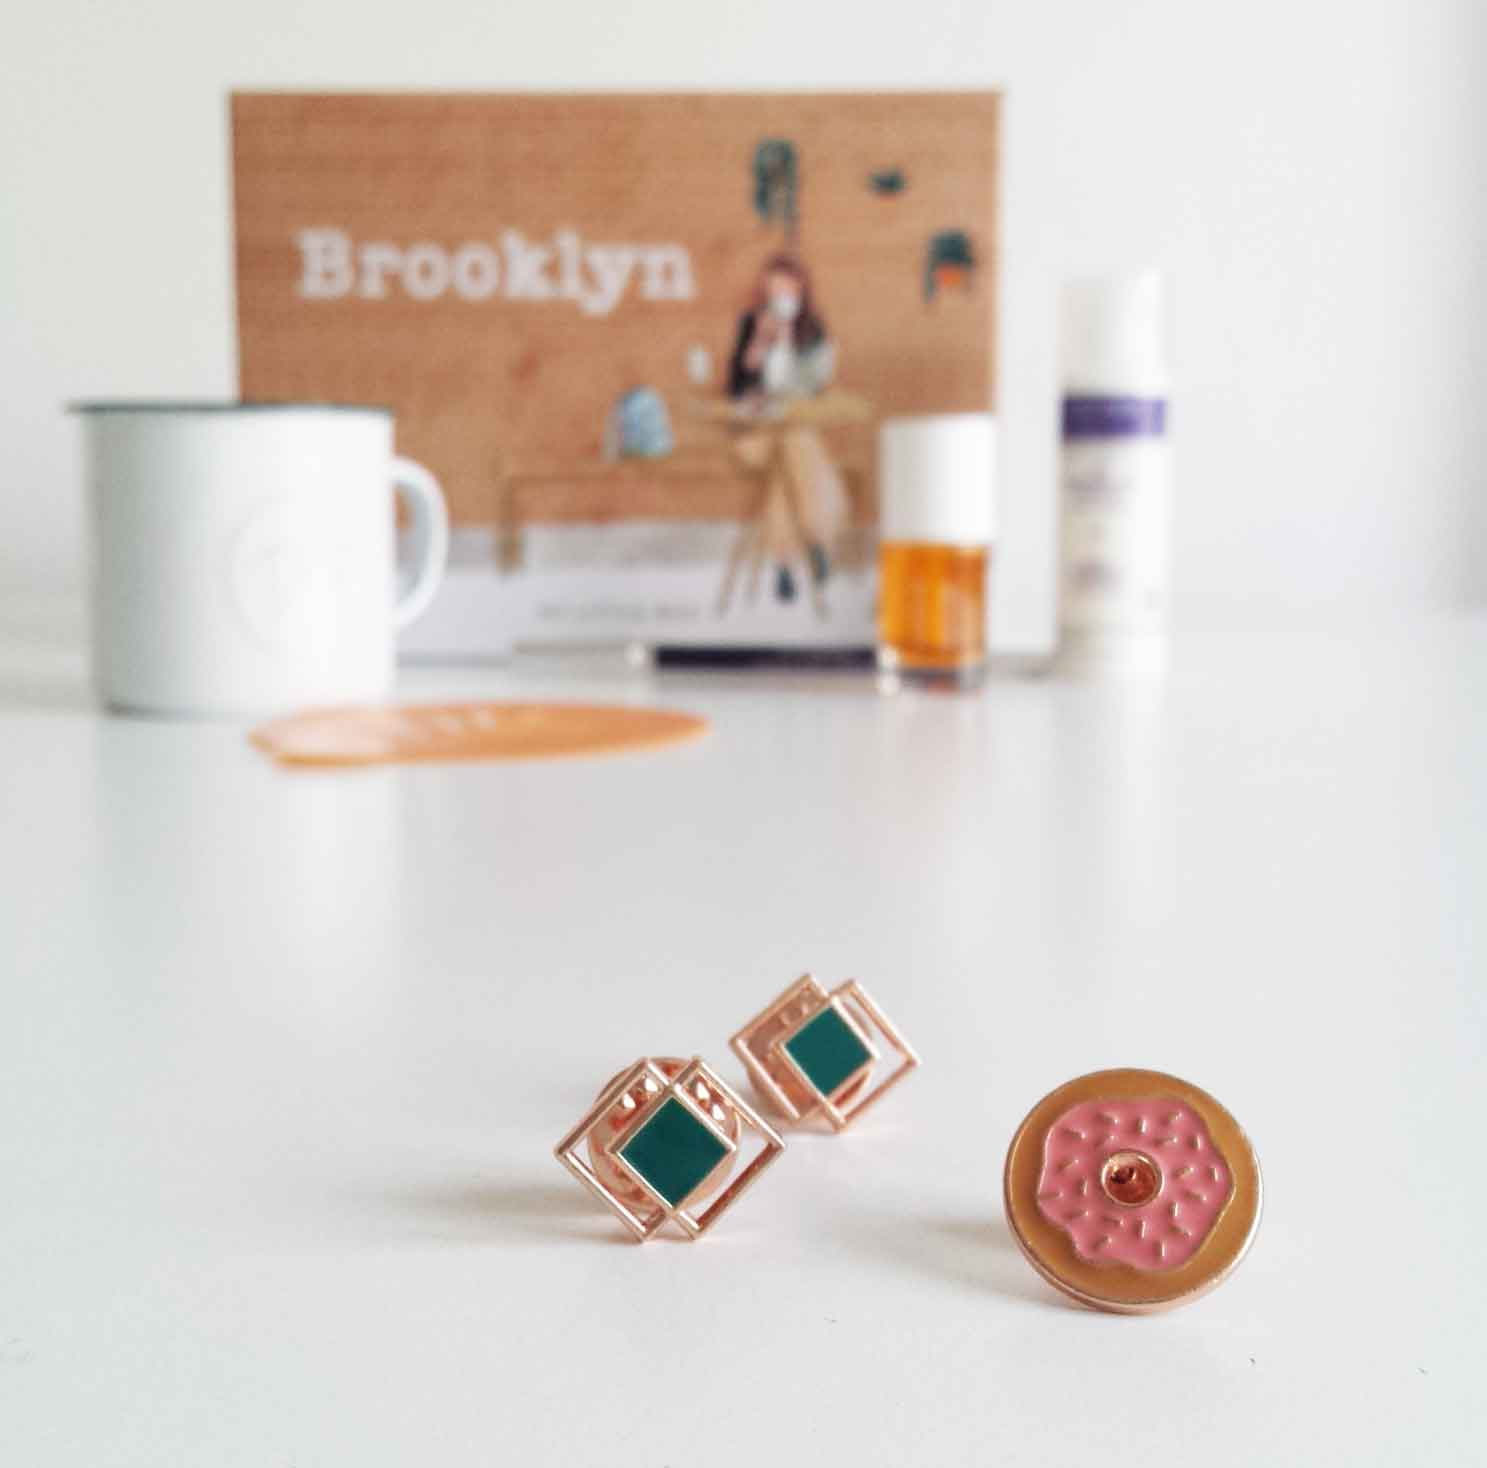 My little brooklyn box